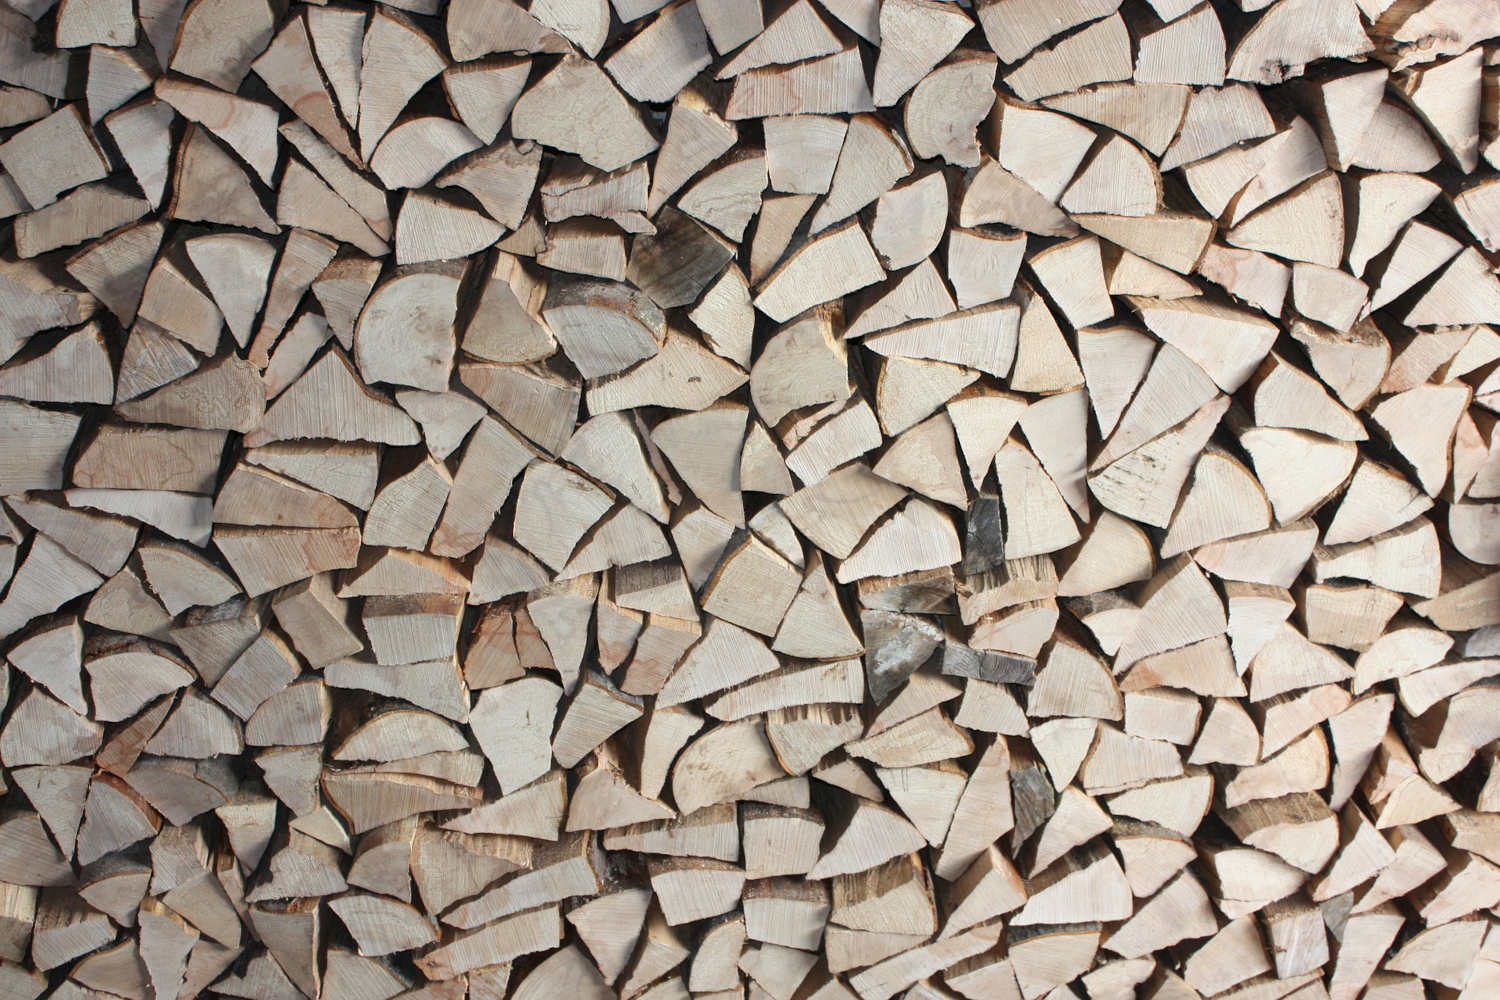 Some wood split into logs ready to burn on a Stove.